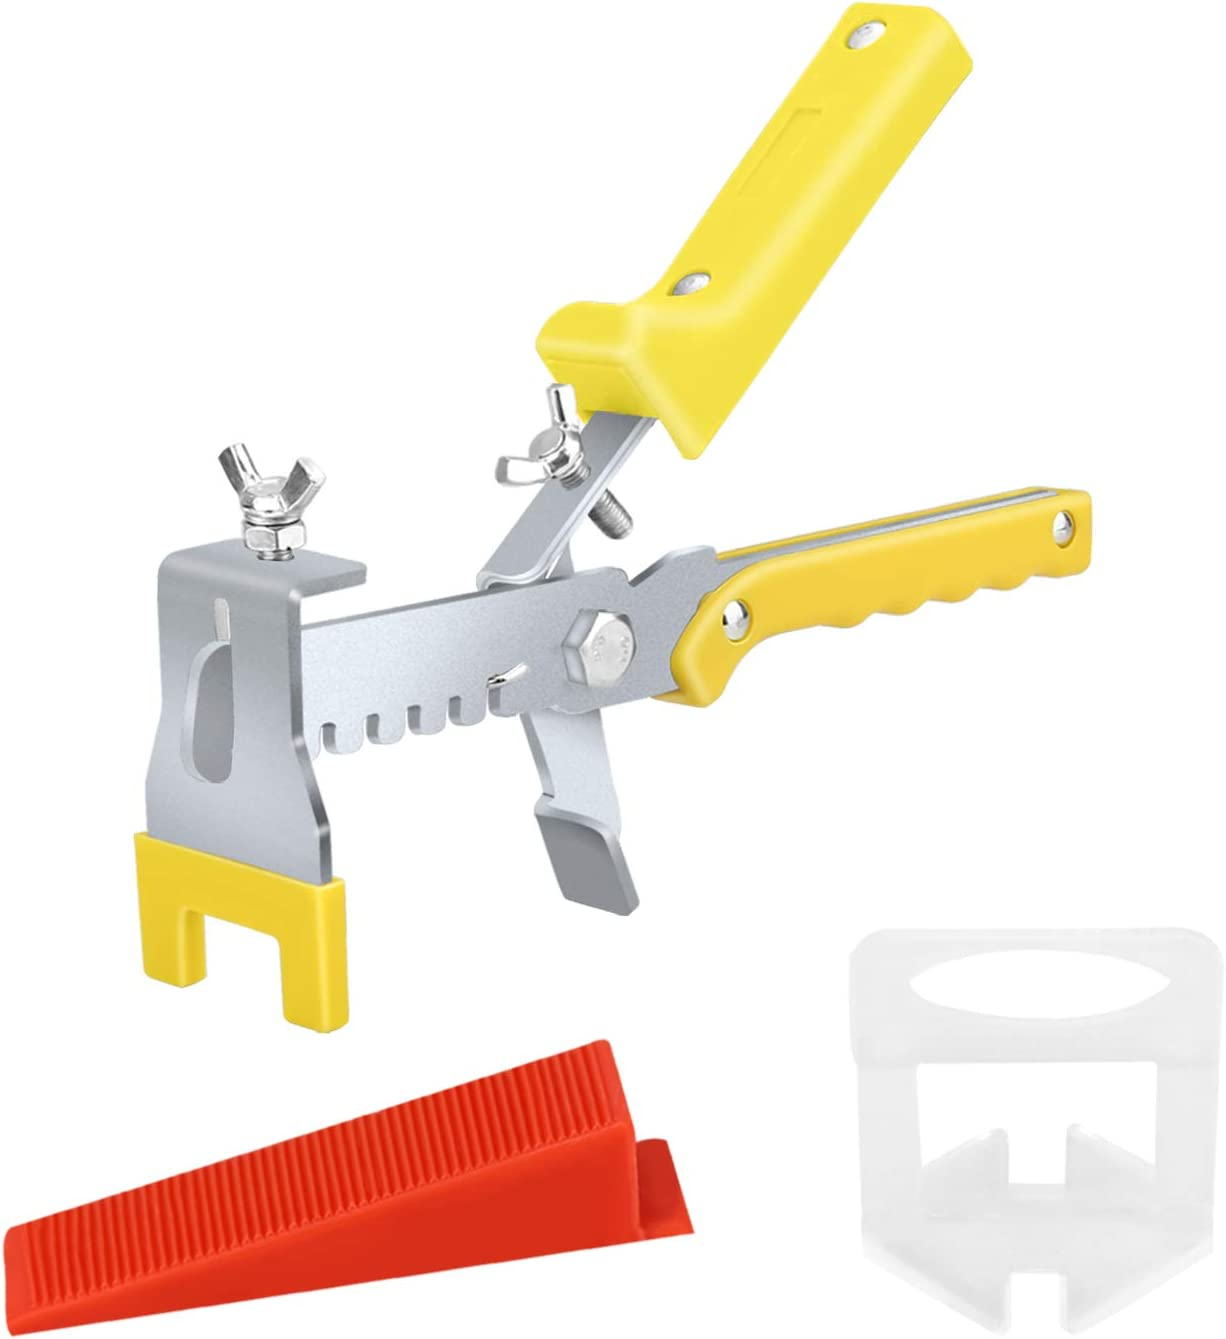 Premium Tile Leveling System with Push Pliers, 300PCS 1/16 Inch Leveler Spacers Clips & Reusable 100PCS Wedges, DIY Tile Tools Set for Floor & Wall Construction by Tanek - -